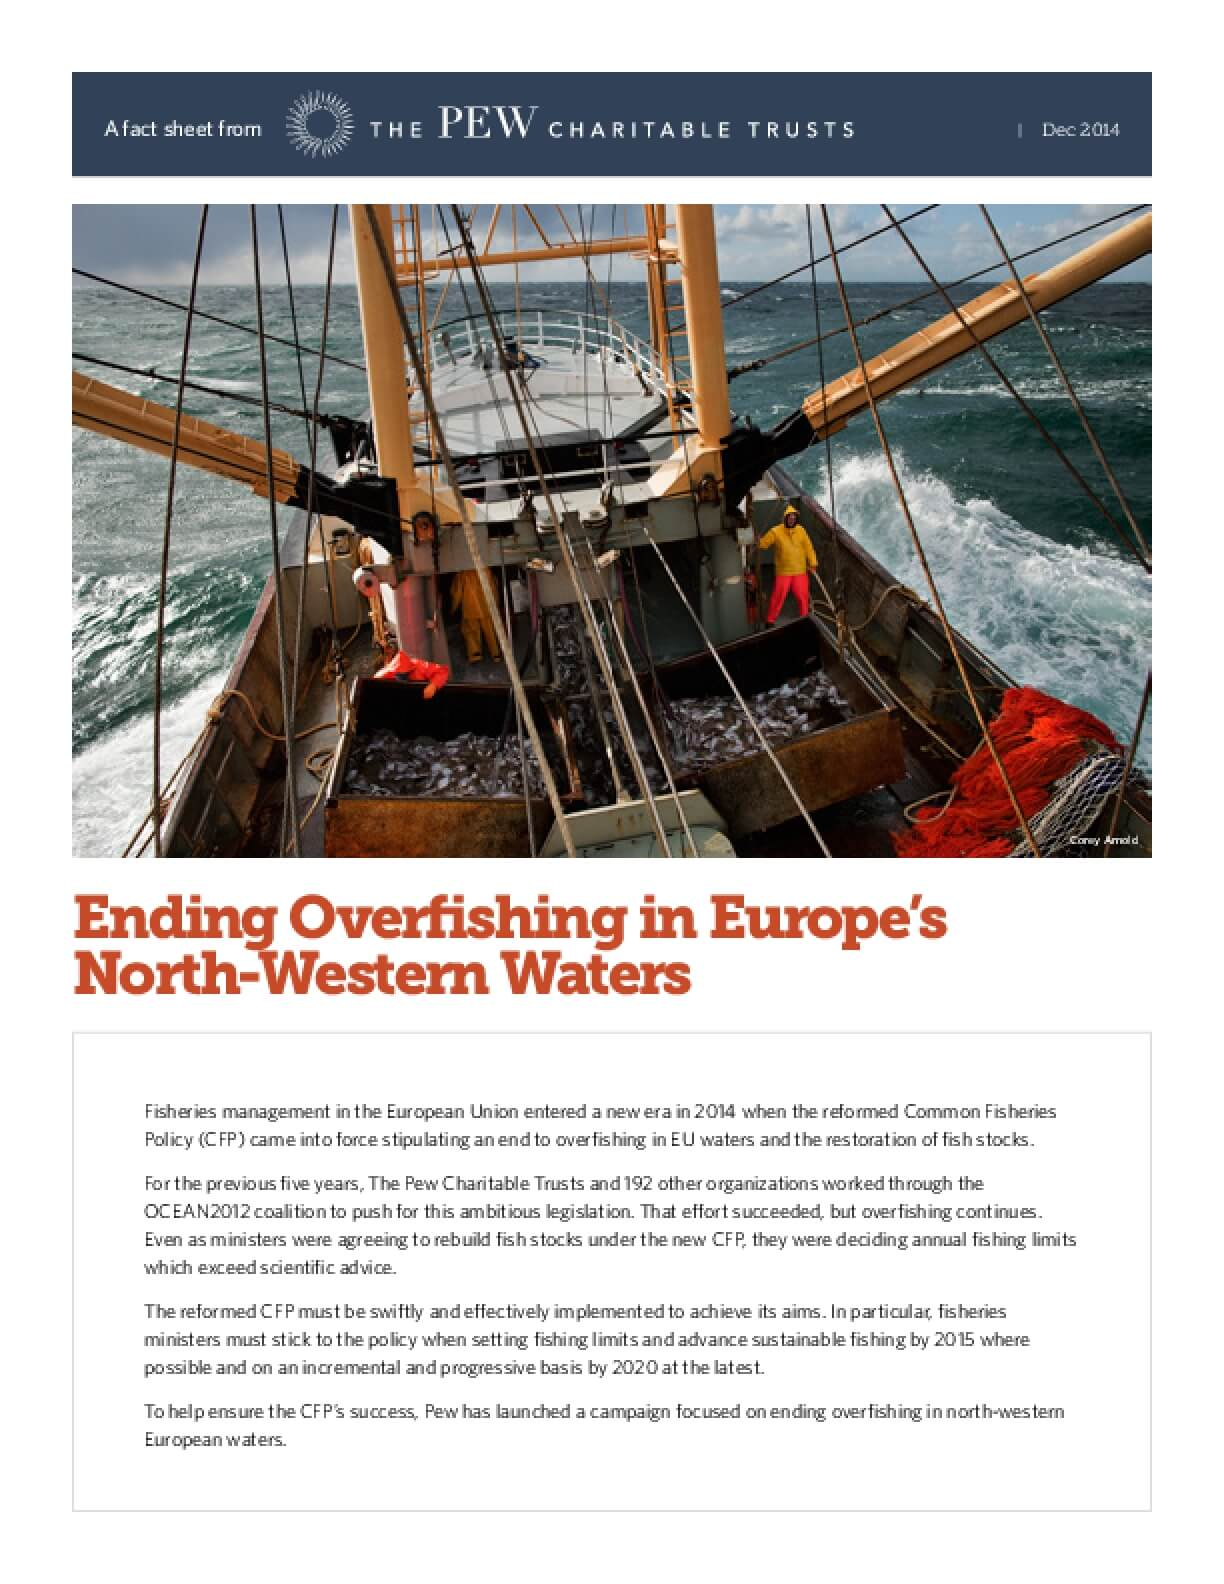 Ending Overfishing in Europe's North-Western Waters